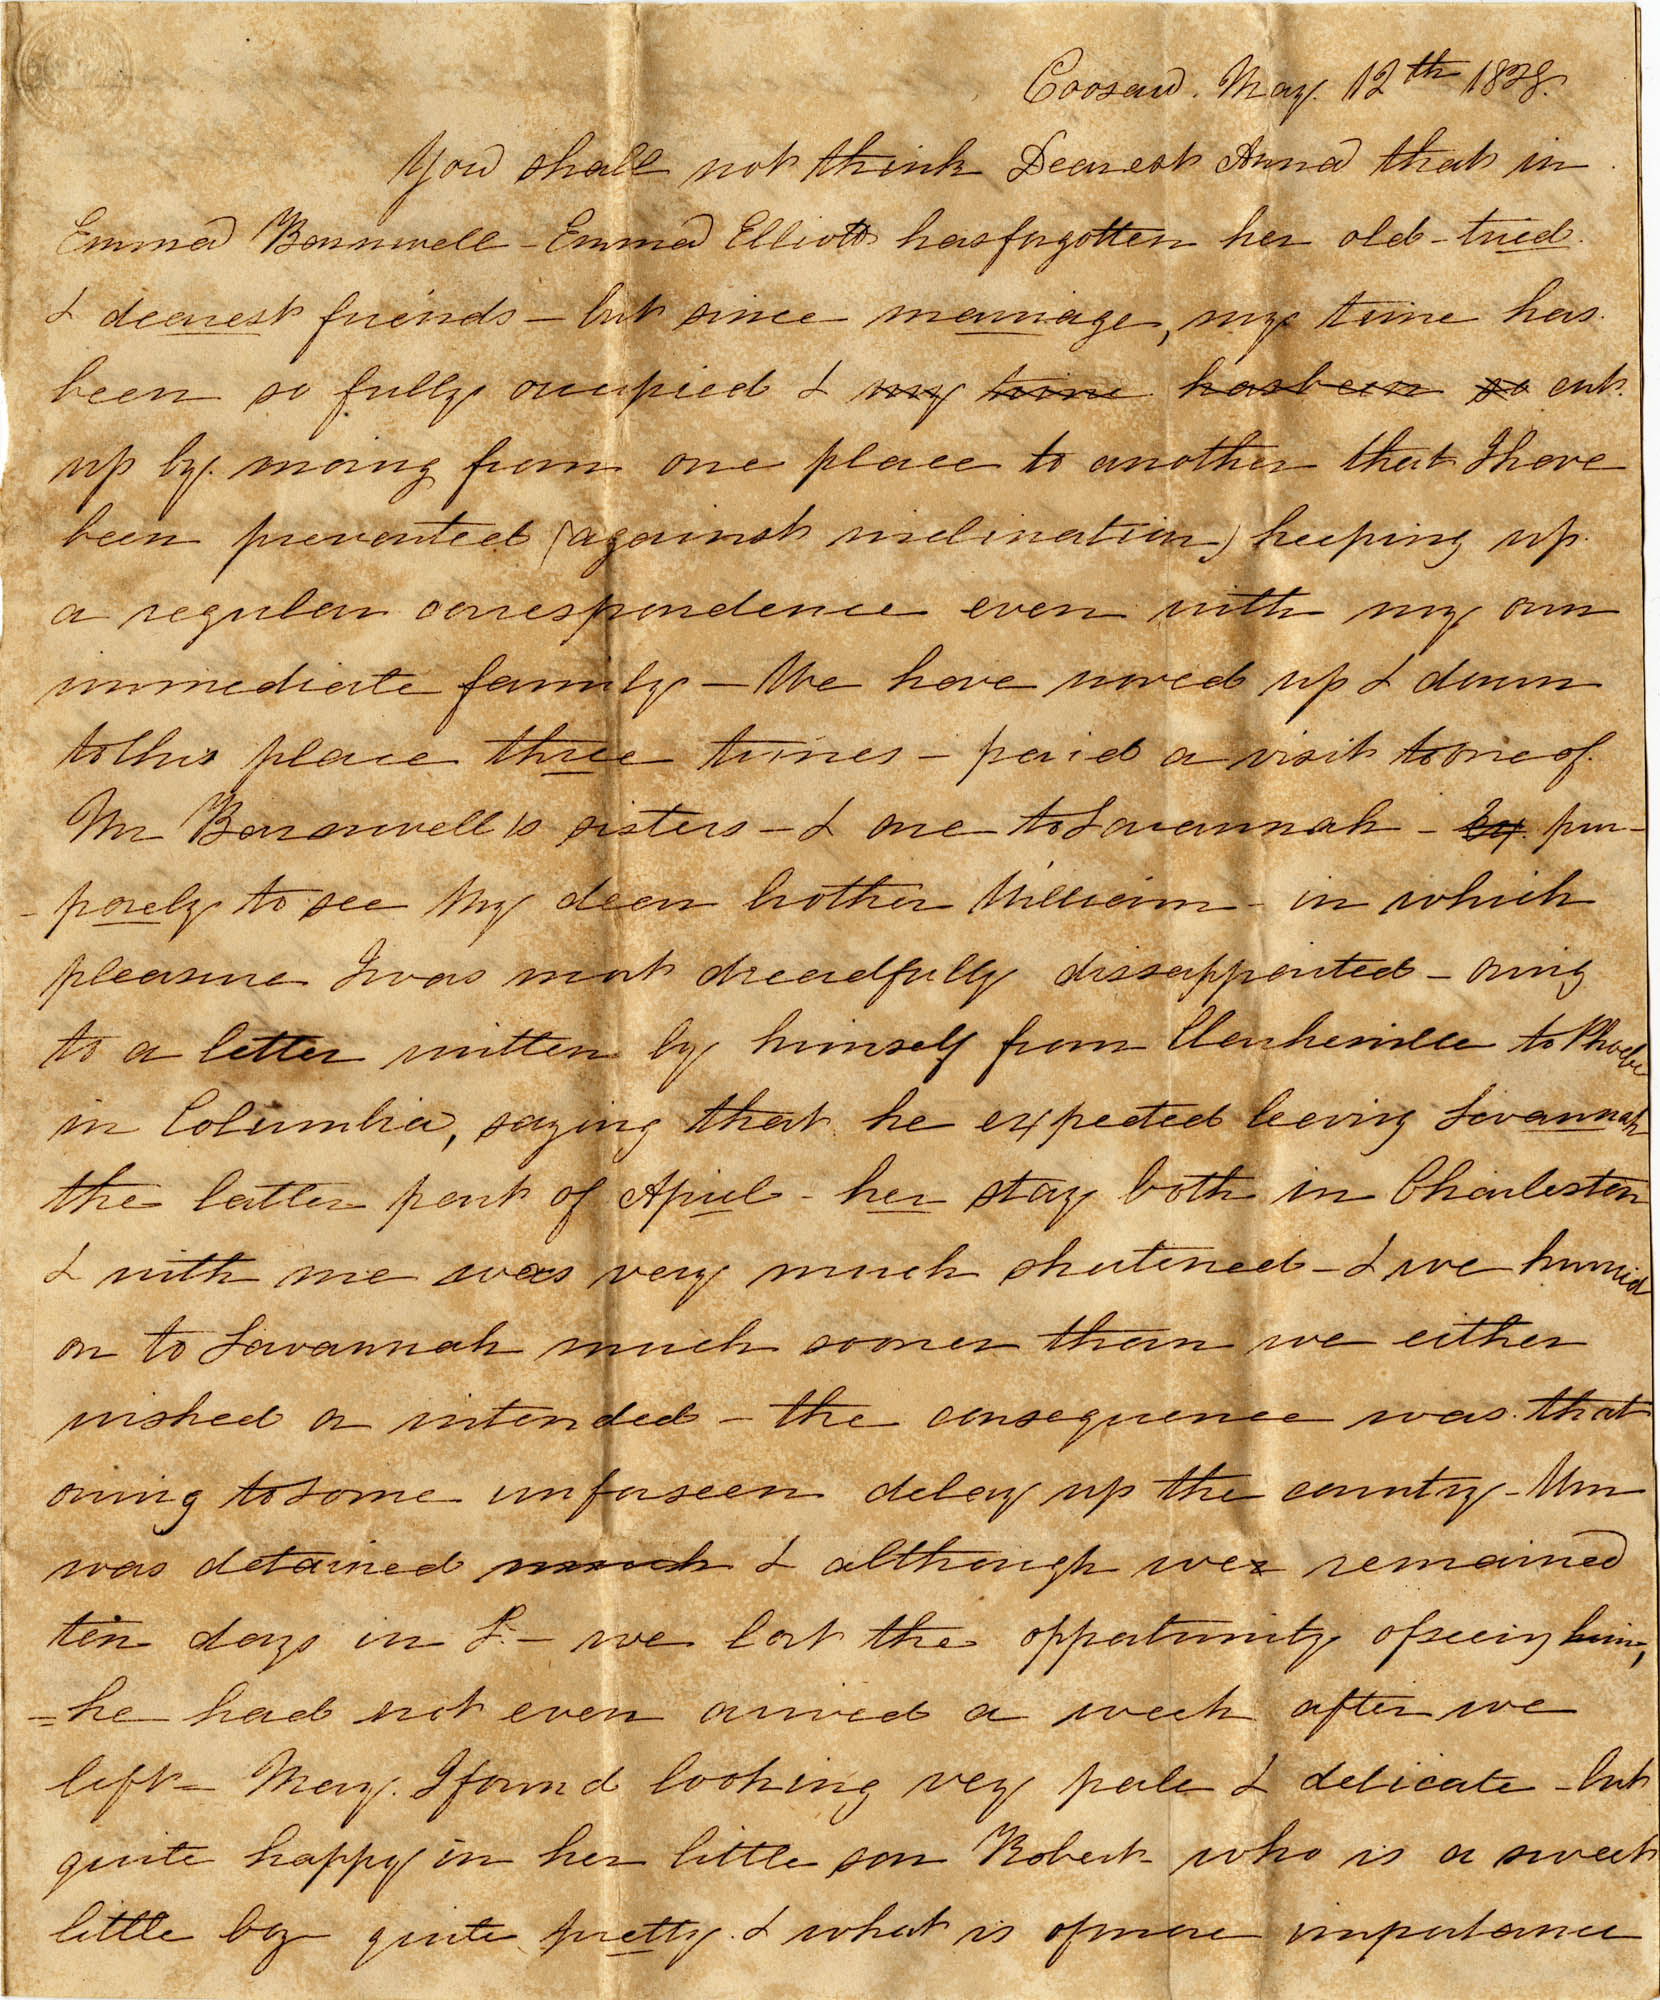 014. Emma Elliott Barnwell to Anna Wilkinson -- May 12, 1828